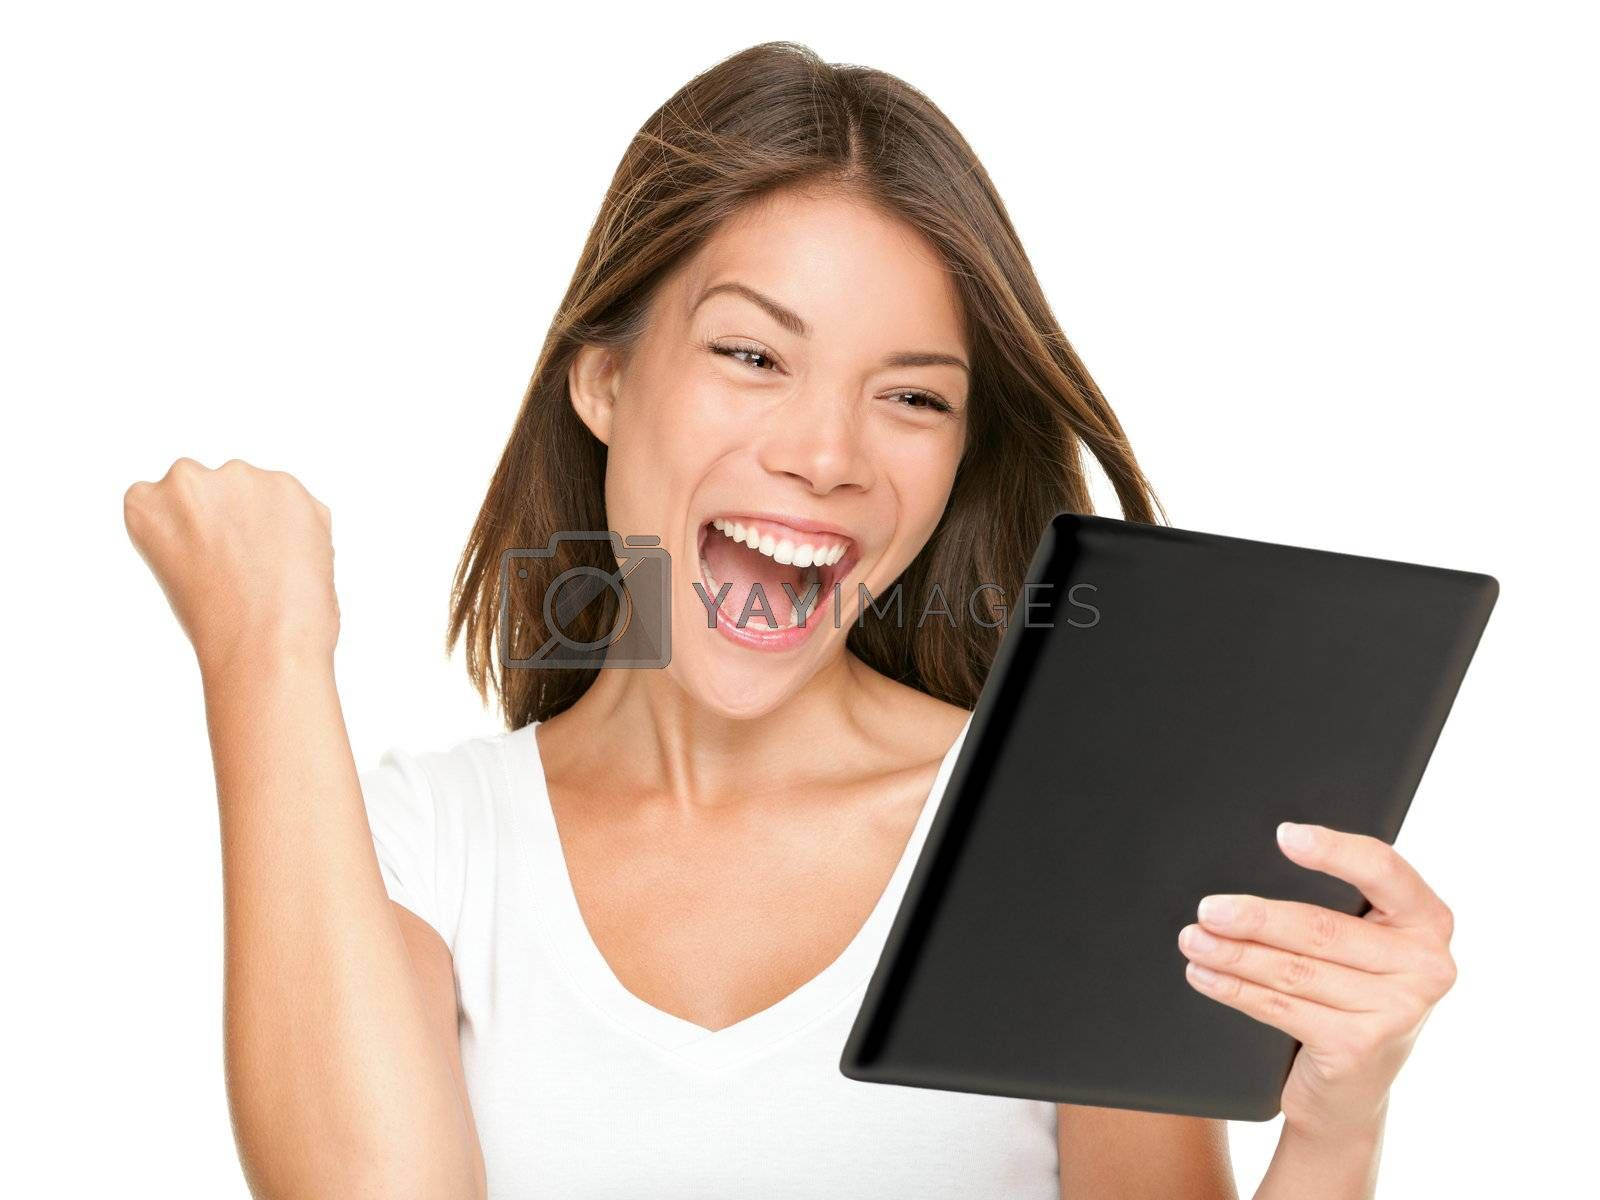 Tablet computer woman winning happy excited looking at screen isolated on white background. Joyful fresh and energetic multiracial young woman.